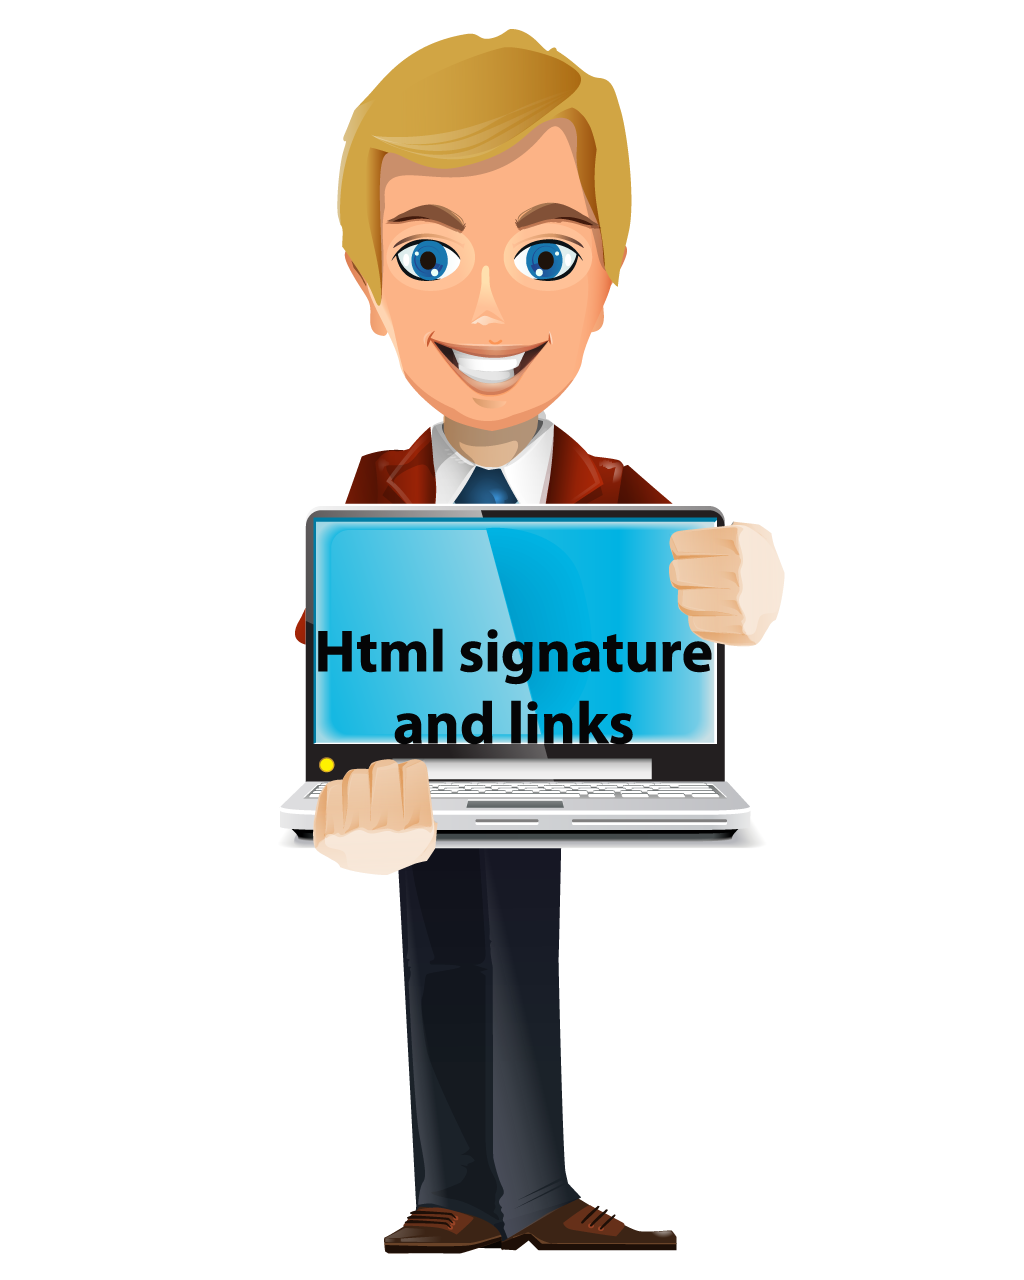 How do you create an html signature or link Archives.